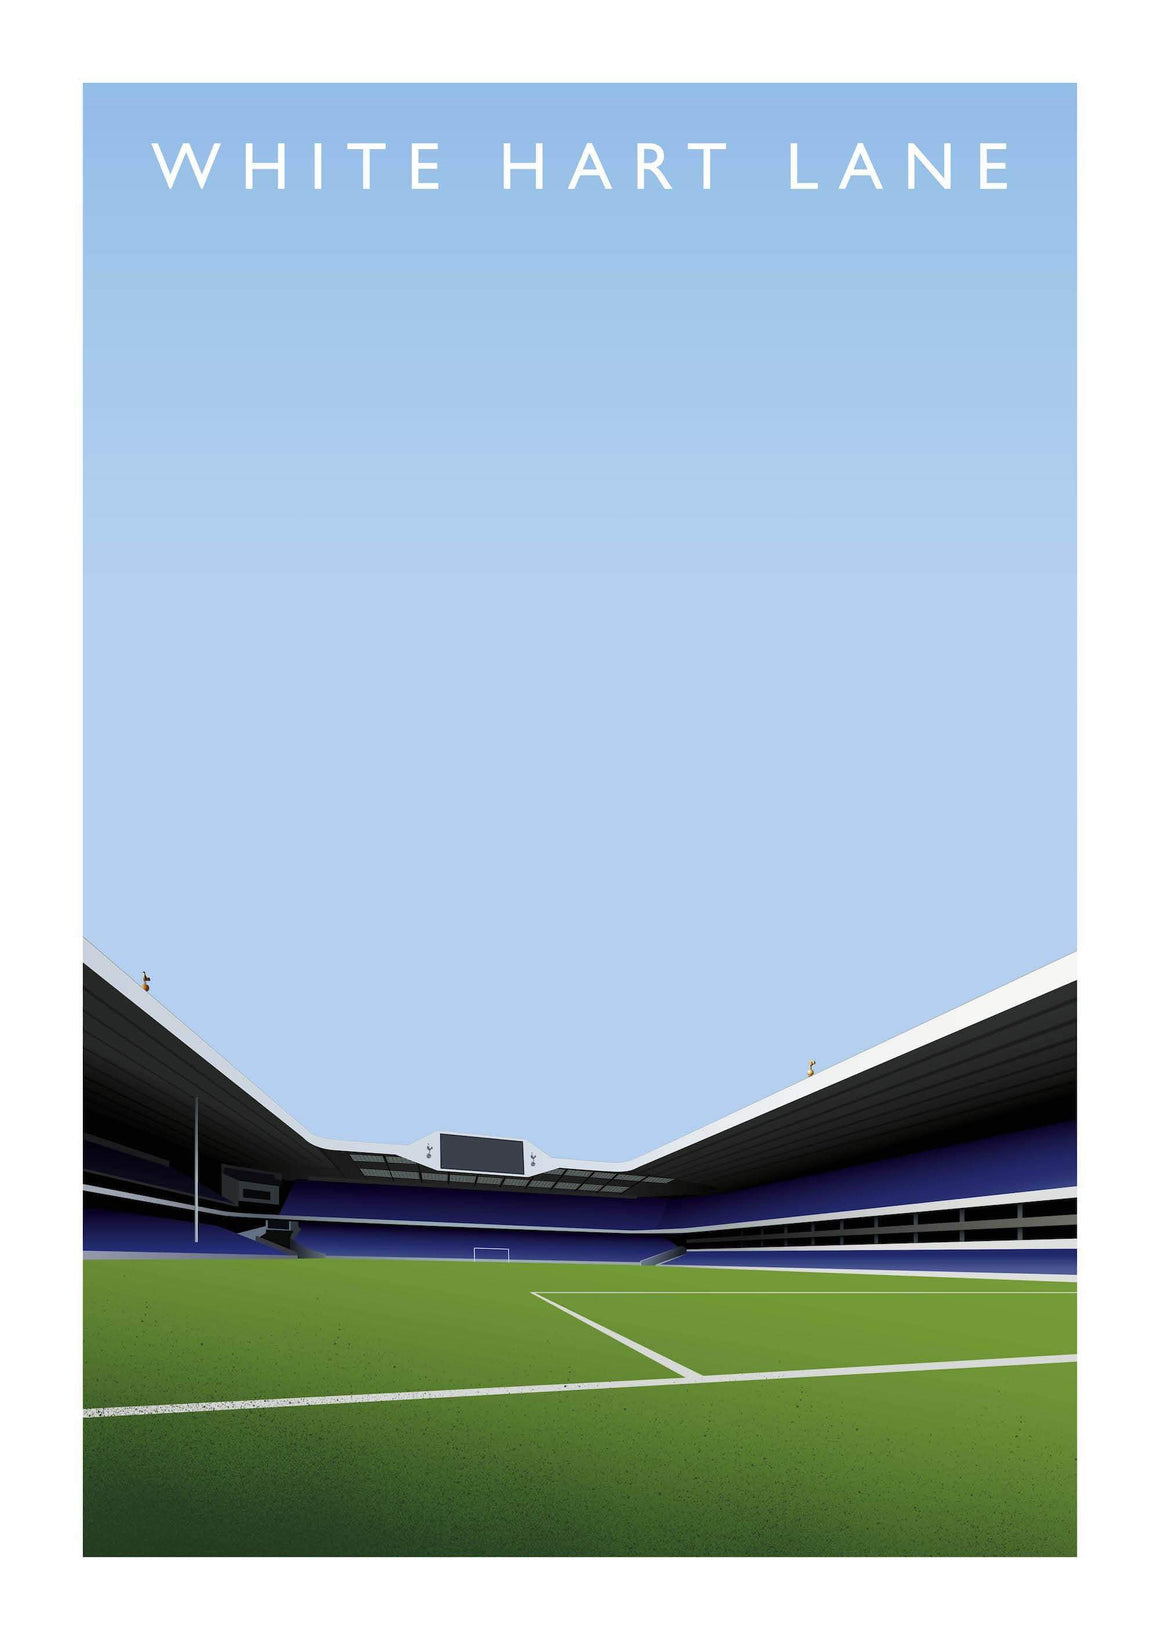 Poster of Tottenham Hotspur ground White Hart Lane - Football Shirt Collective